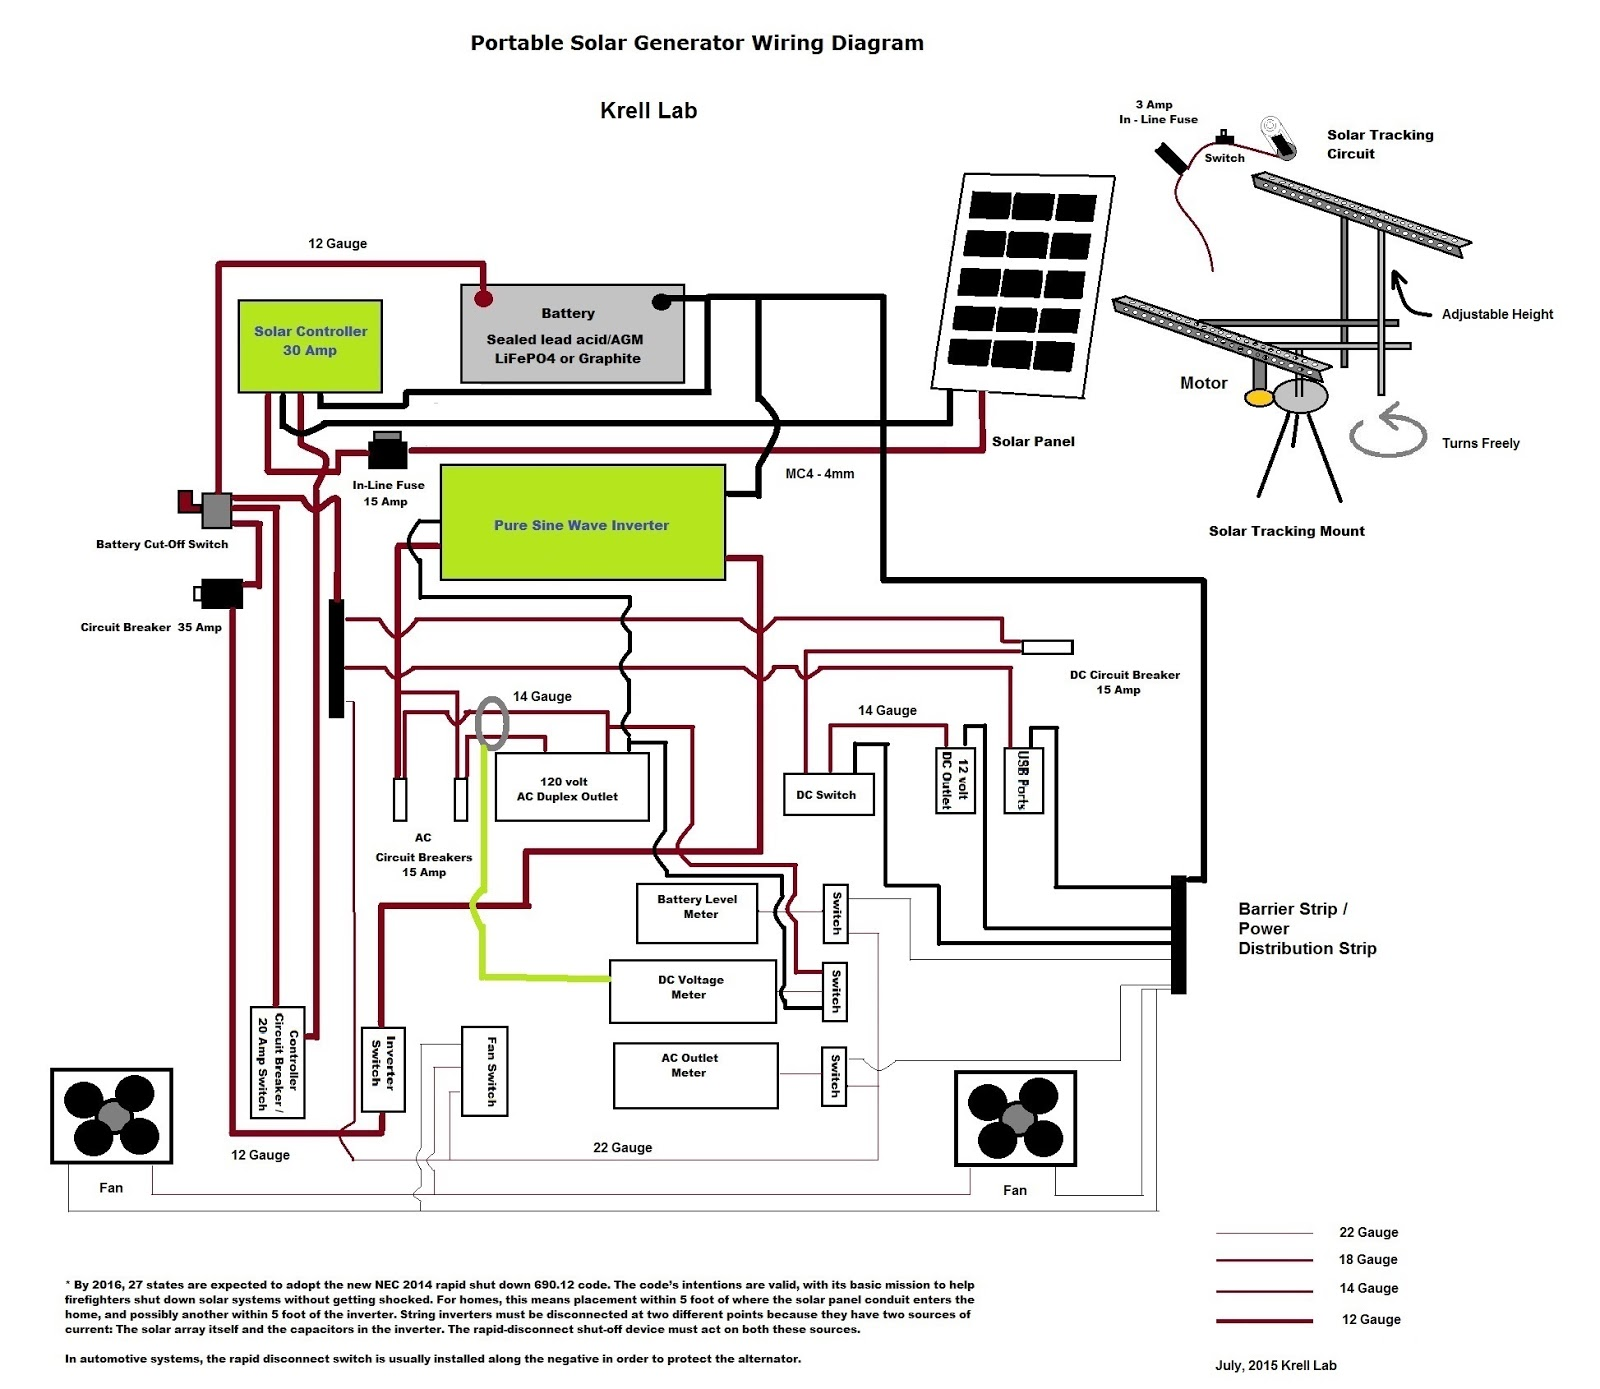 Portable_Solar_Generator_Wiring_Diagram_Krell_Lab the krell lab portable solar generator in a battery box 24v portable solar system wiring diagram at aneh.co